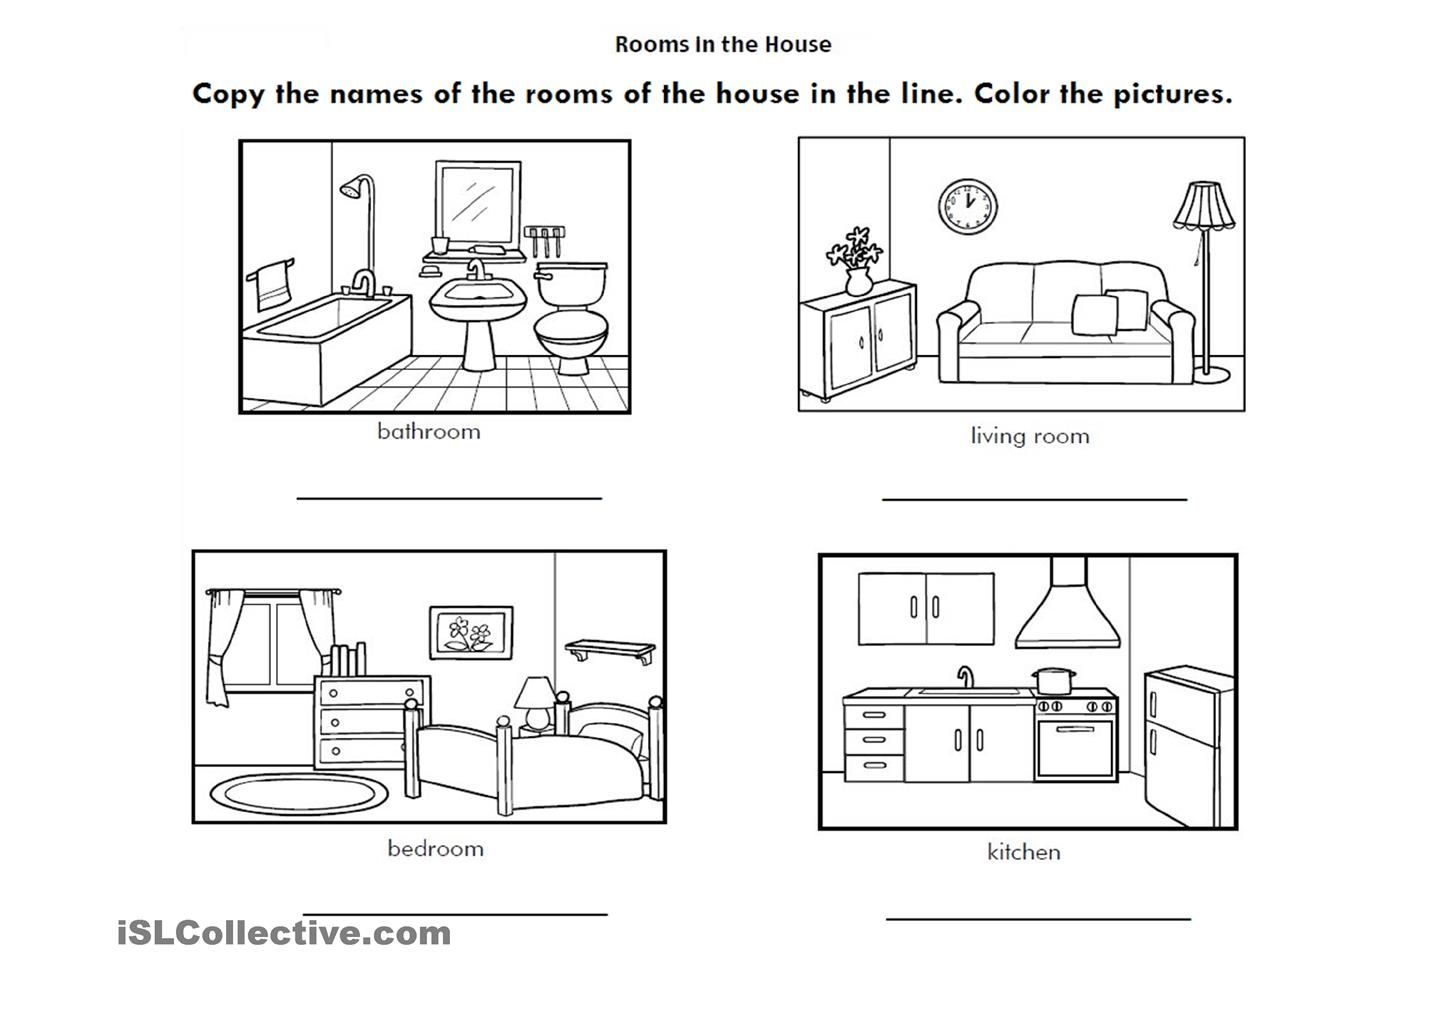 Worksheet About The White House